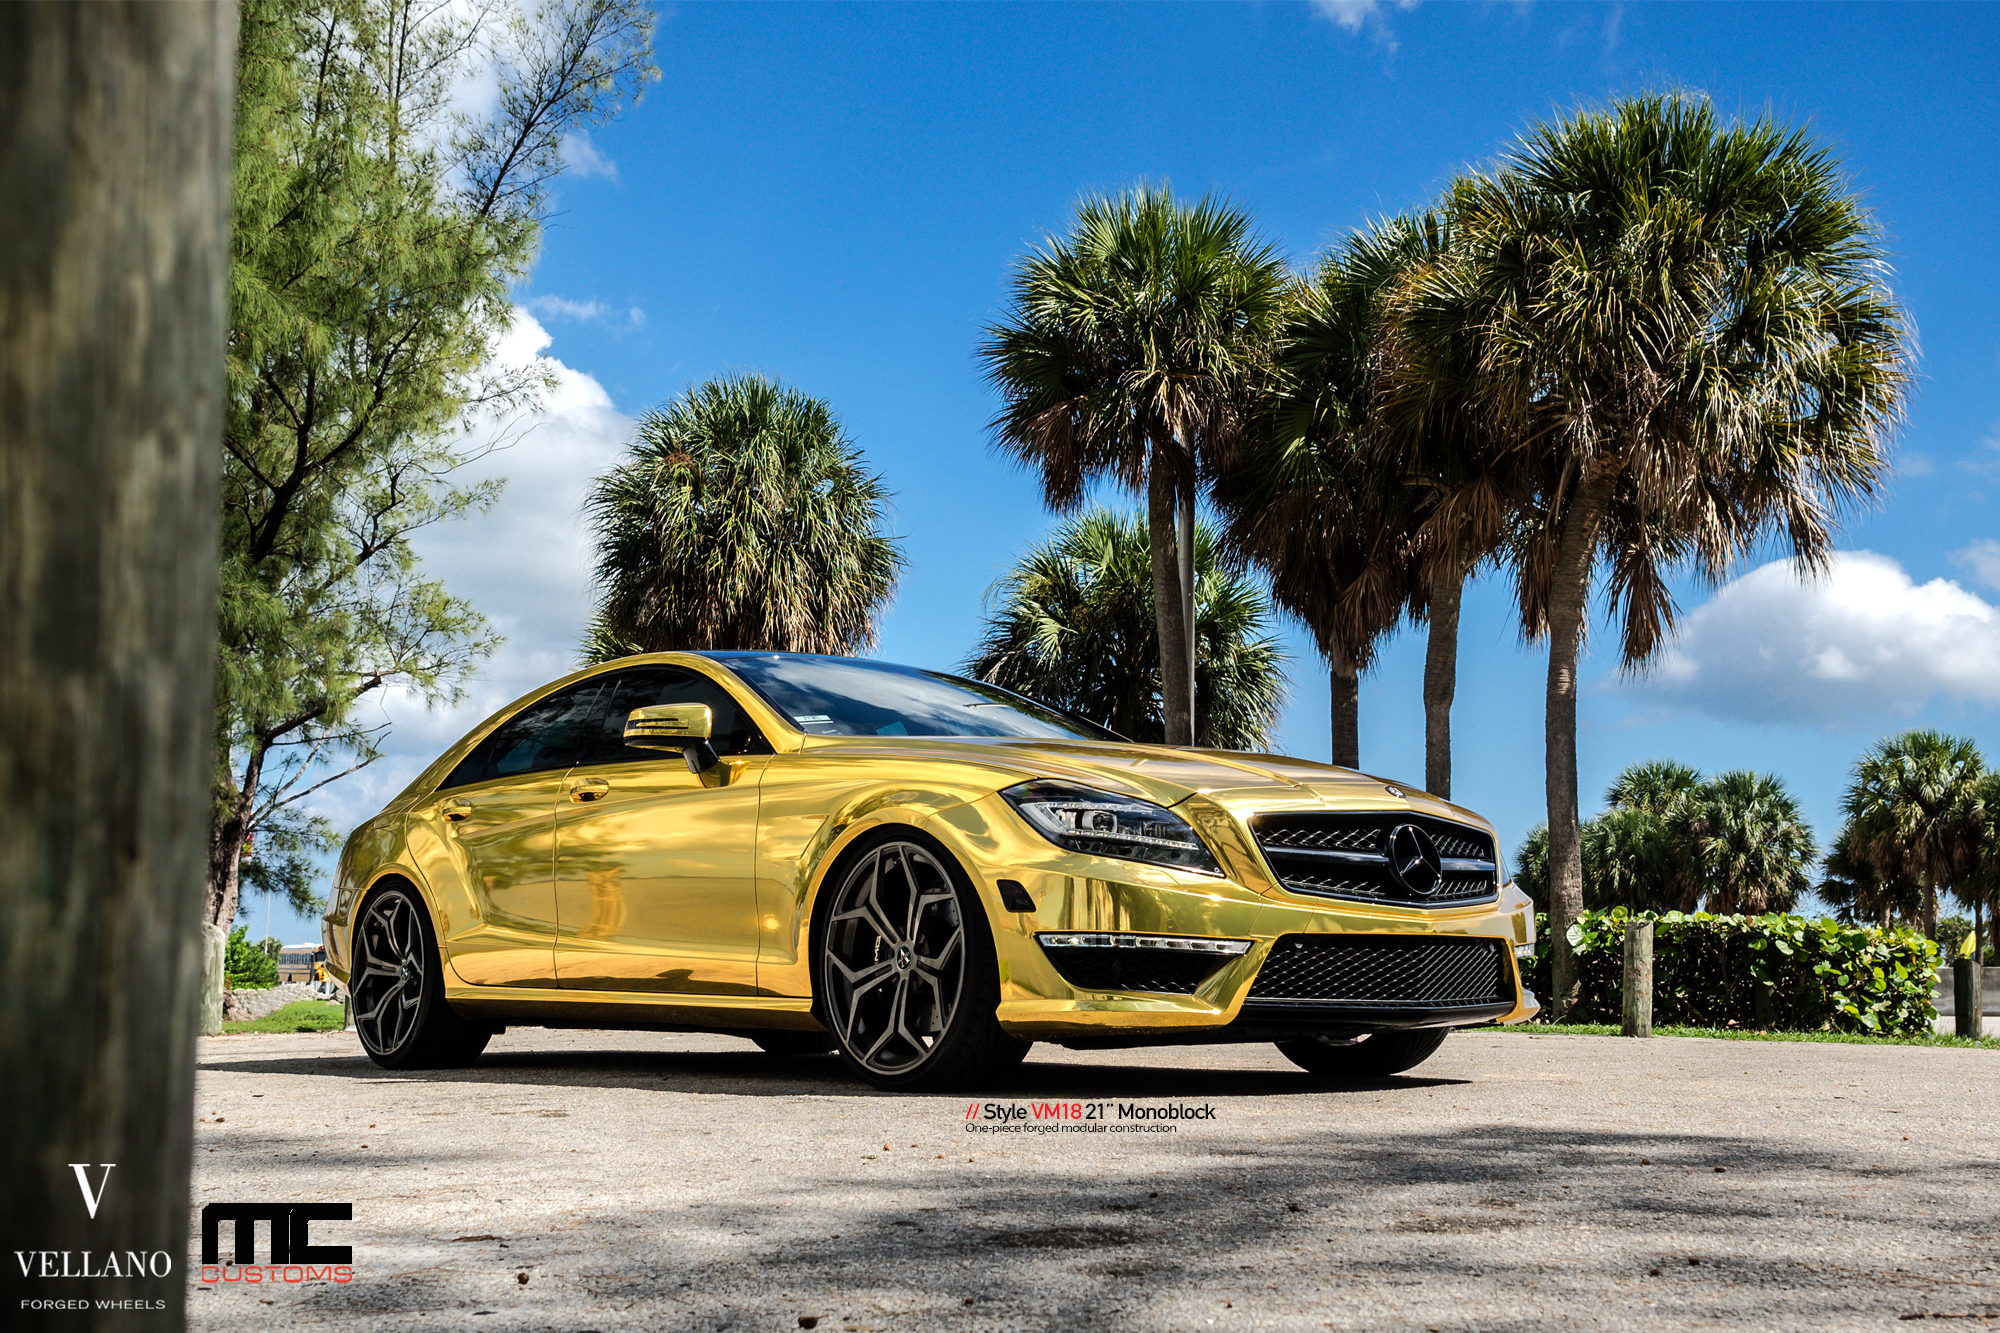 Mercedes Cls 63 Amg Makes Gold Wrap And Vellano Wheels Cool Autoevolution